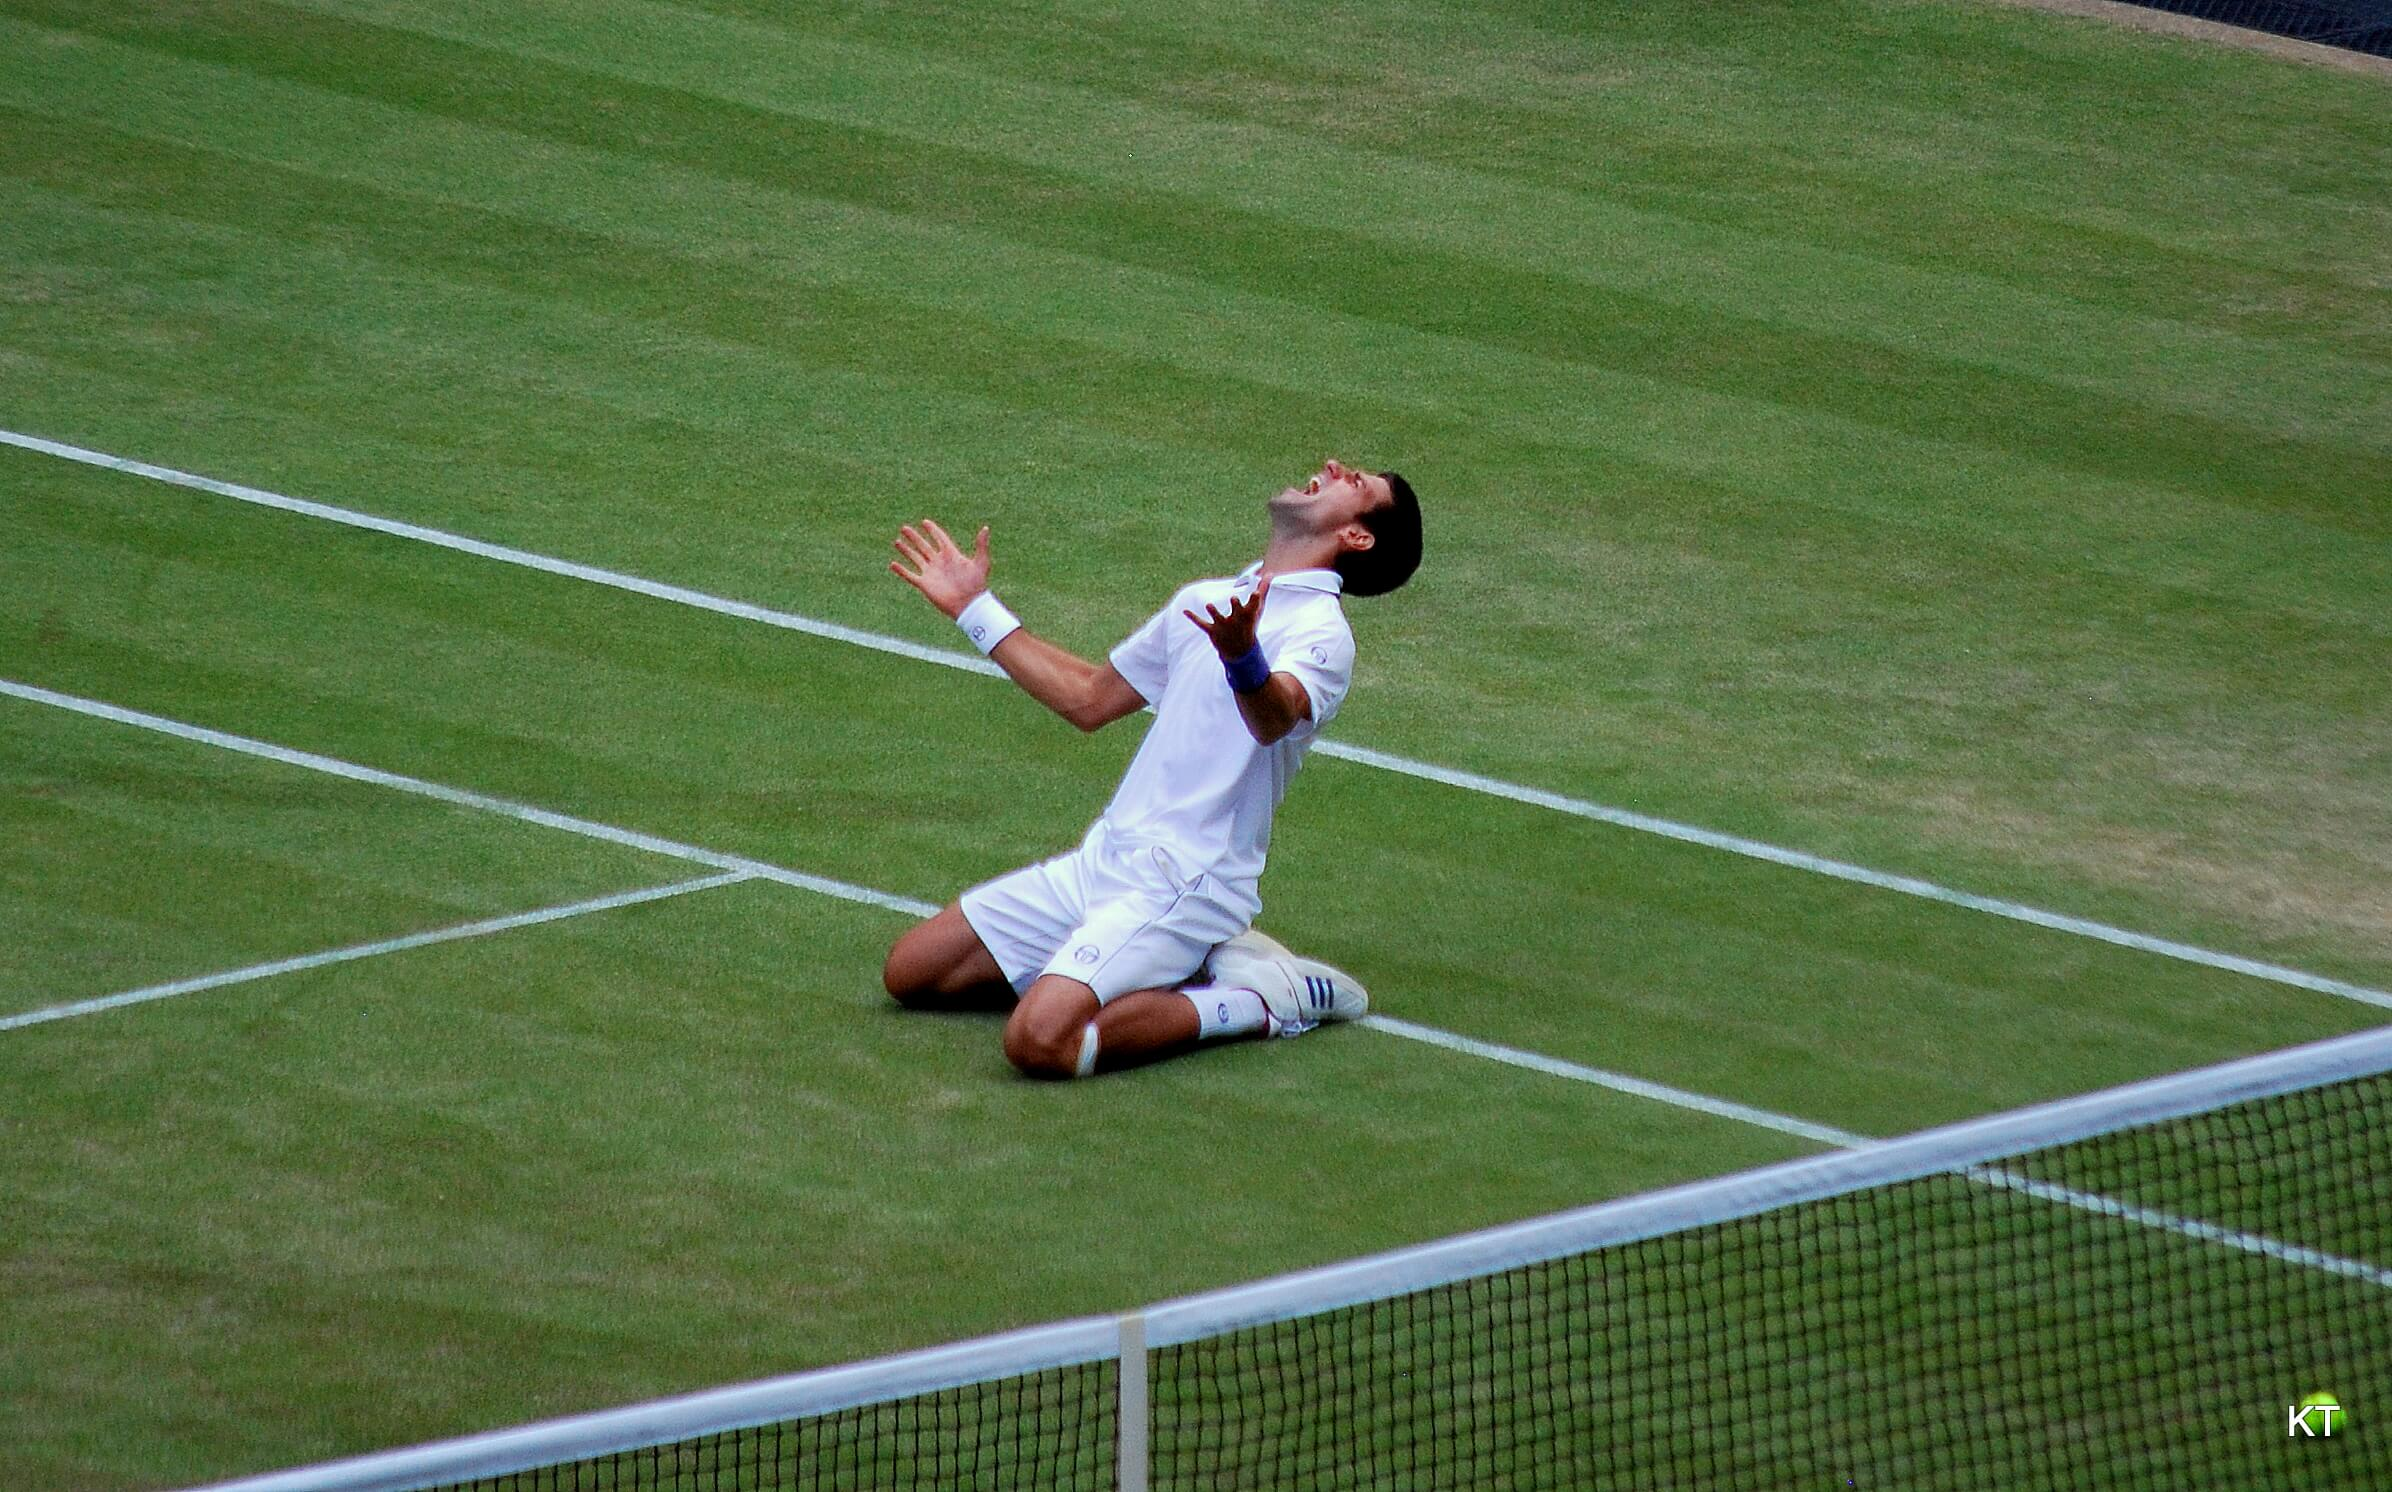 Novak_Djokovic_Wimbledon_2011_semifinal_win_celebration